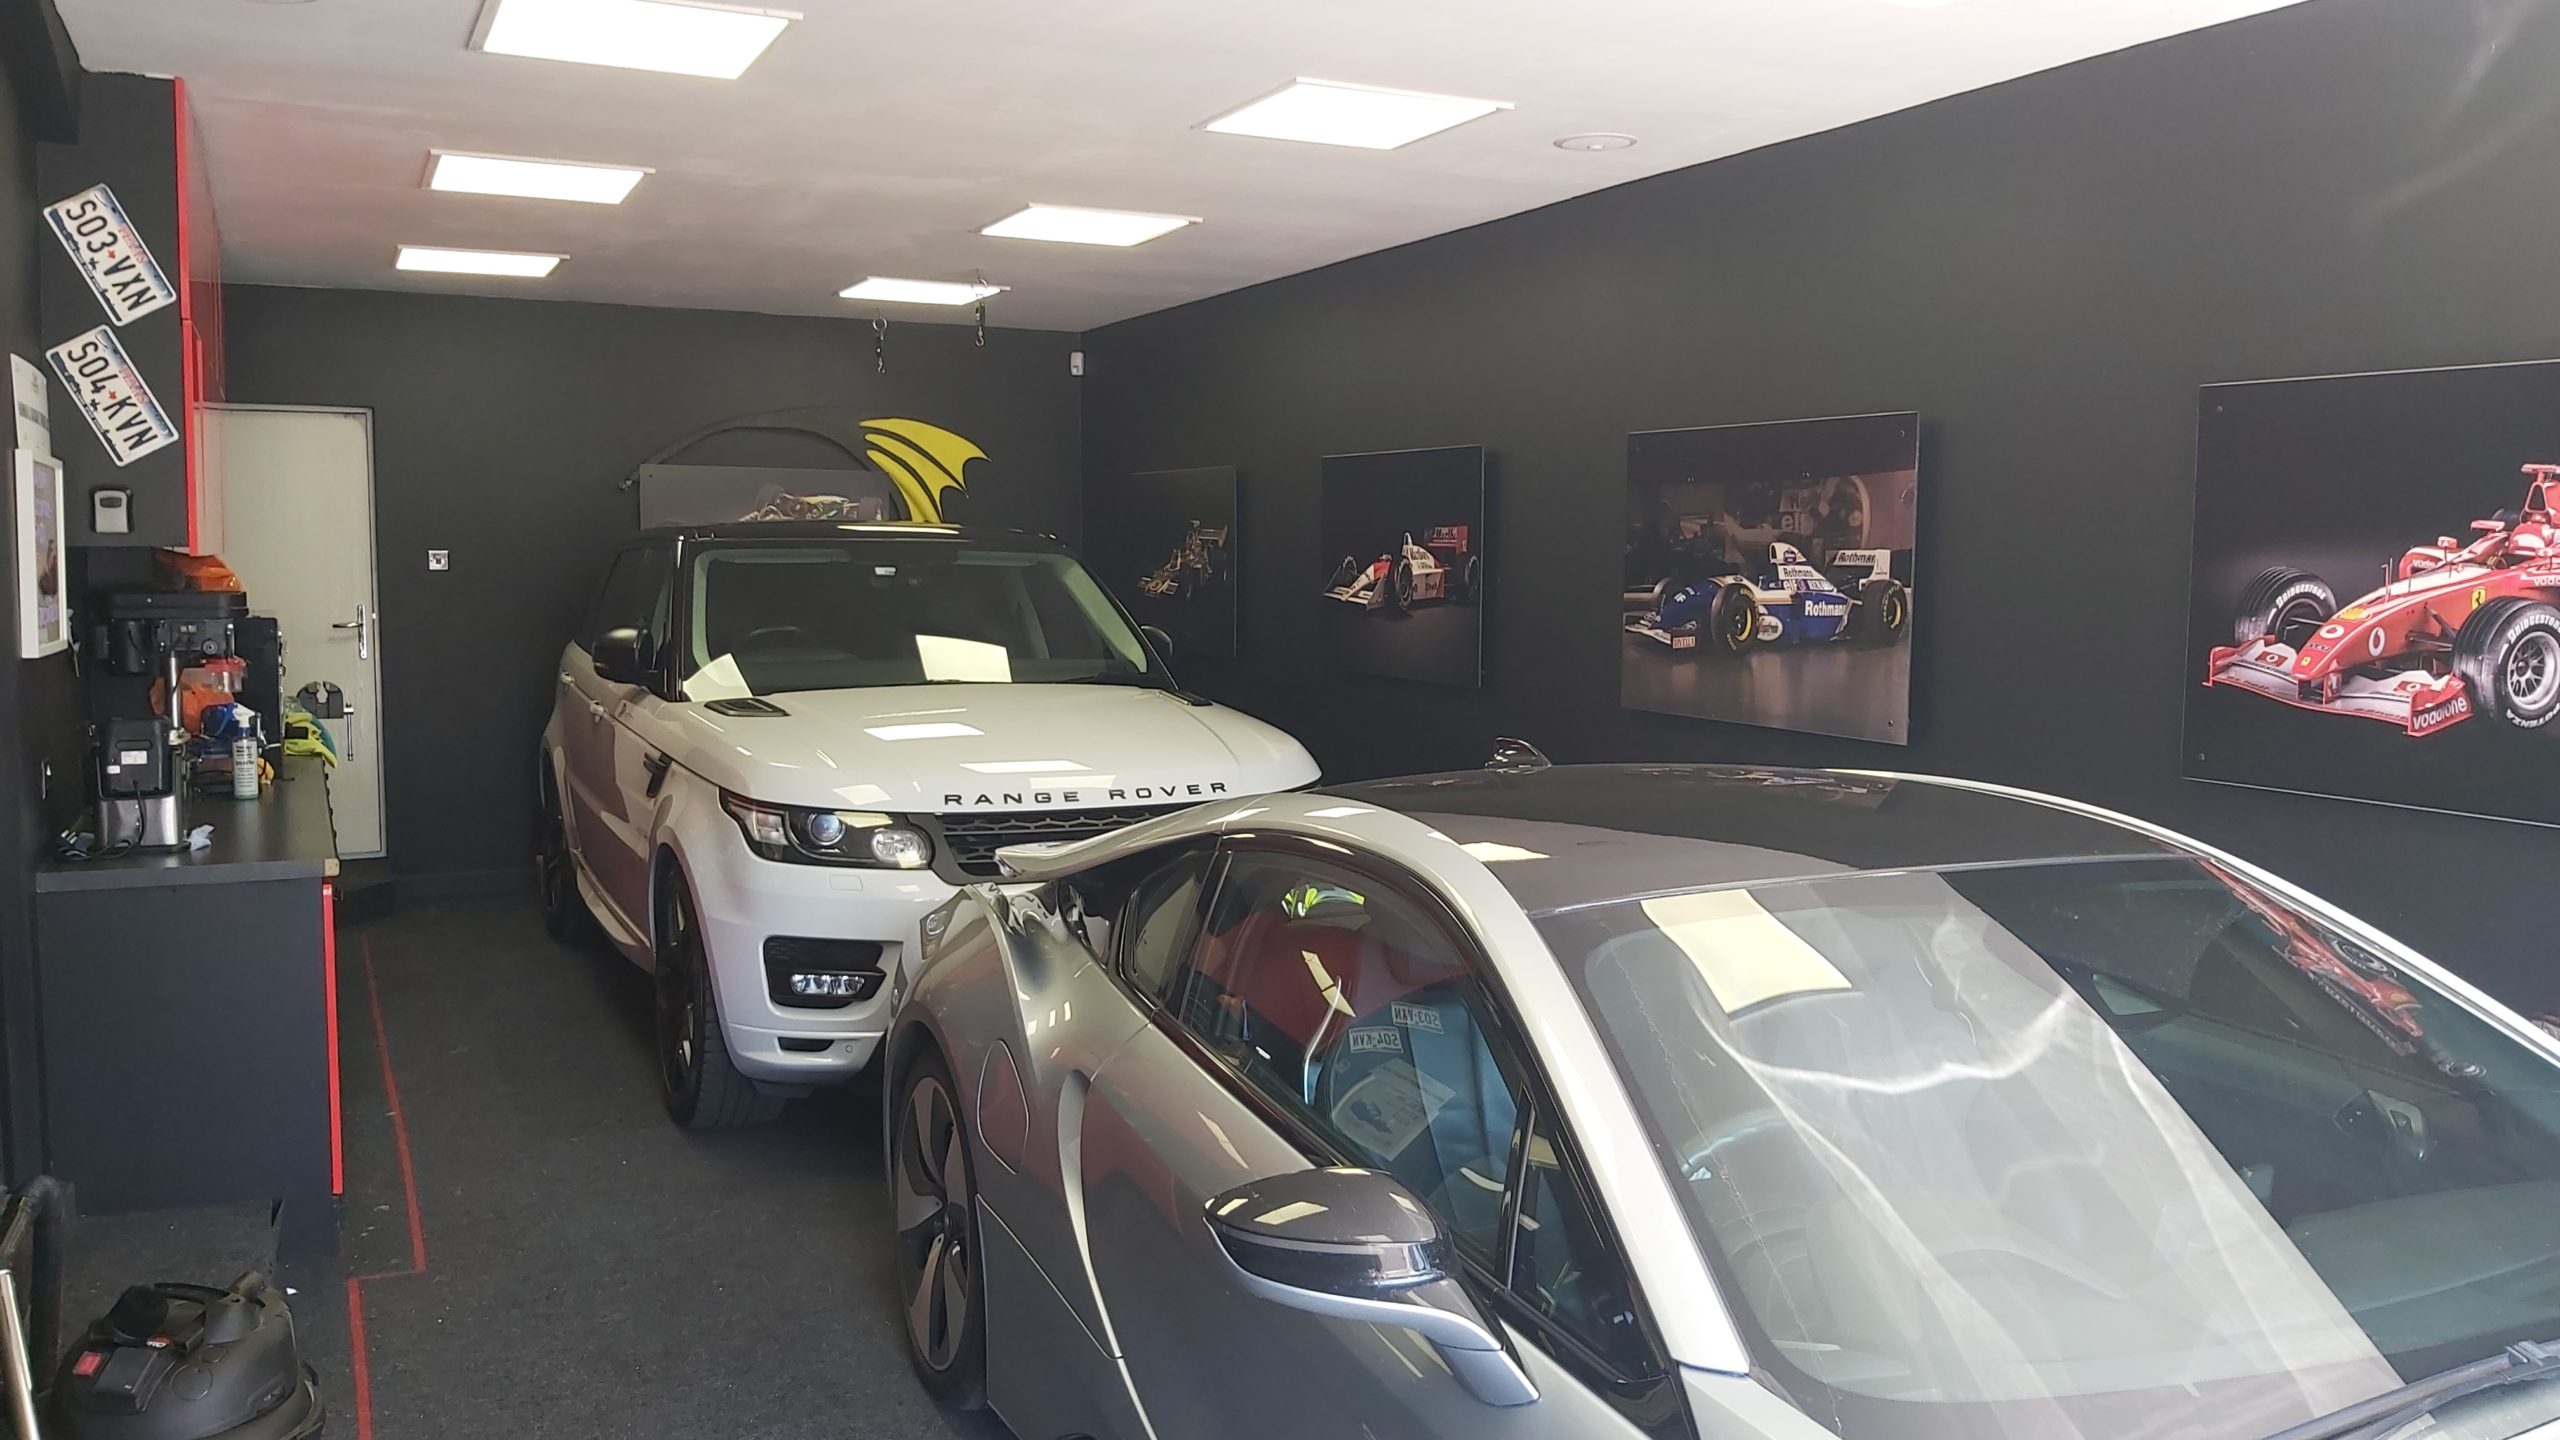 Range Rover and BMW parked in new garage